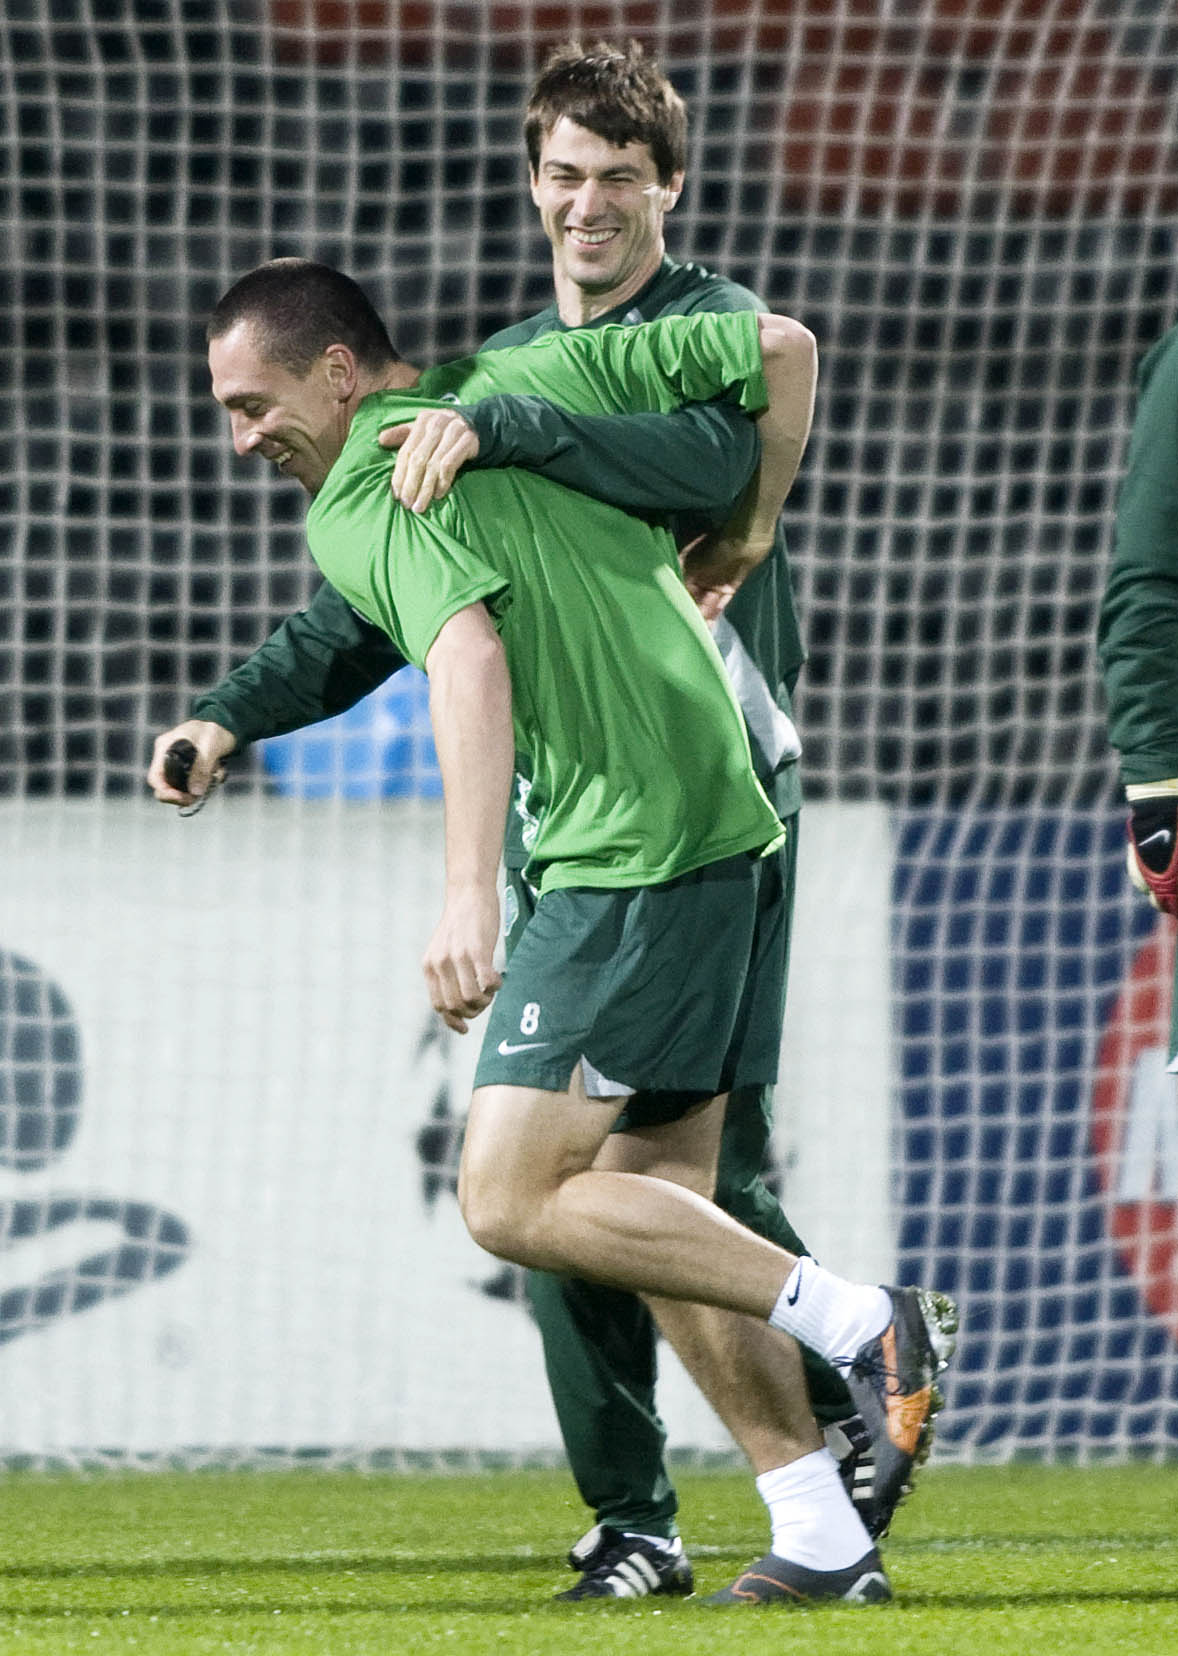 Gregory Dupont with current Celtic captain Scott Brown